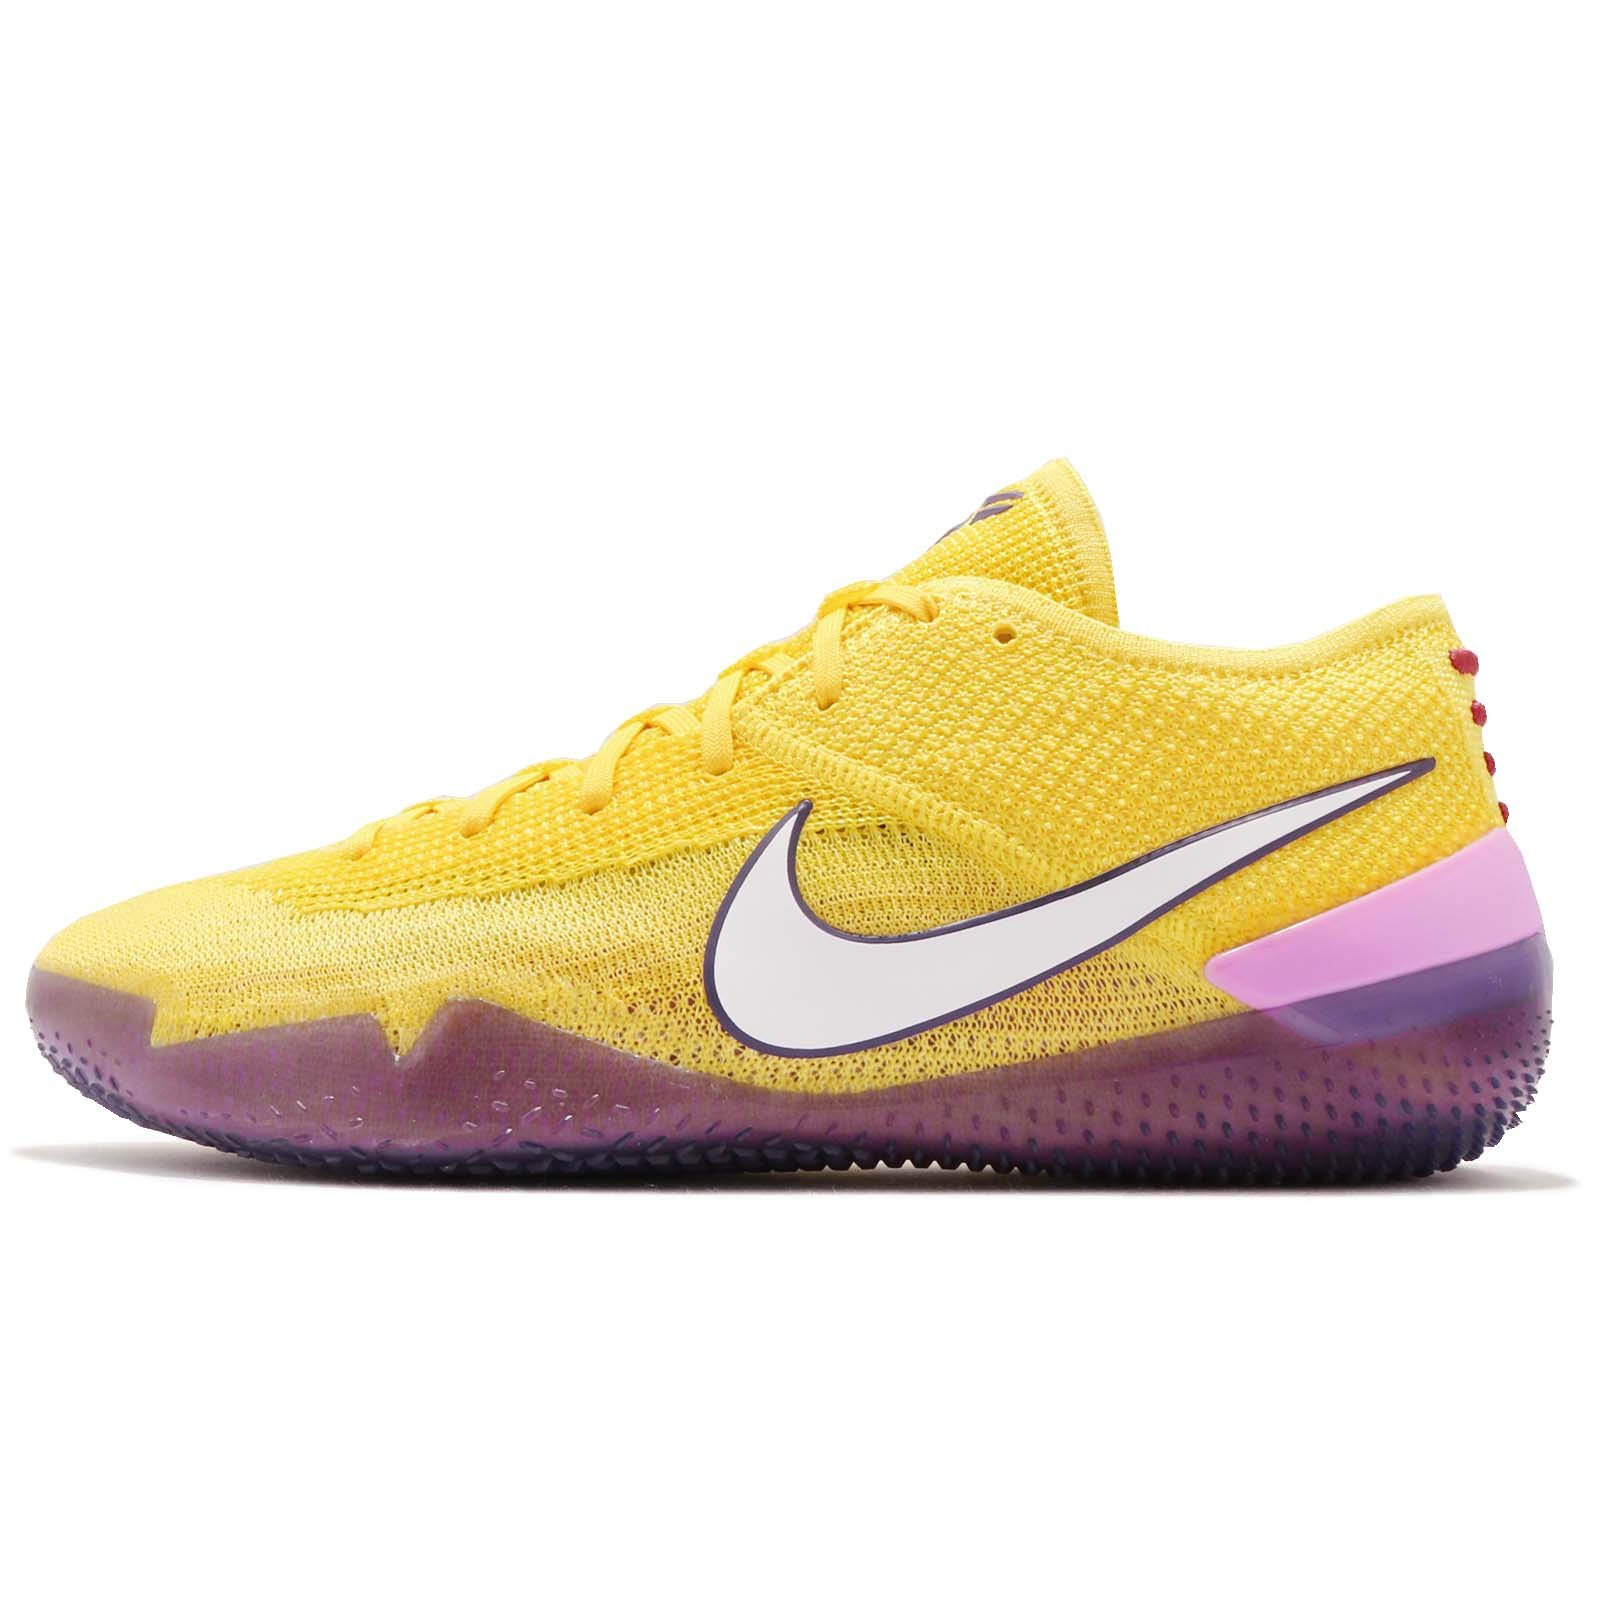 5f749c81e508 Galleon - Nike Men s Kobe A.D. NXT 360 Basketball Shoes (12-M) Yellow White